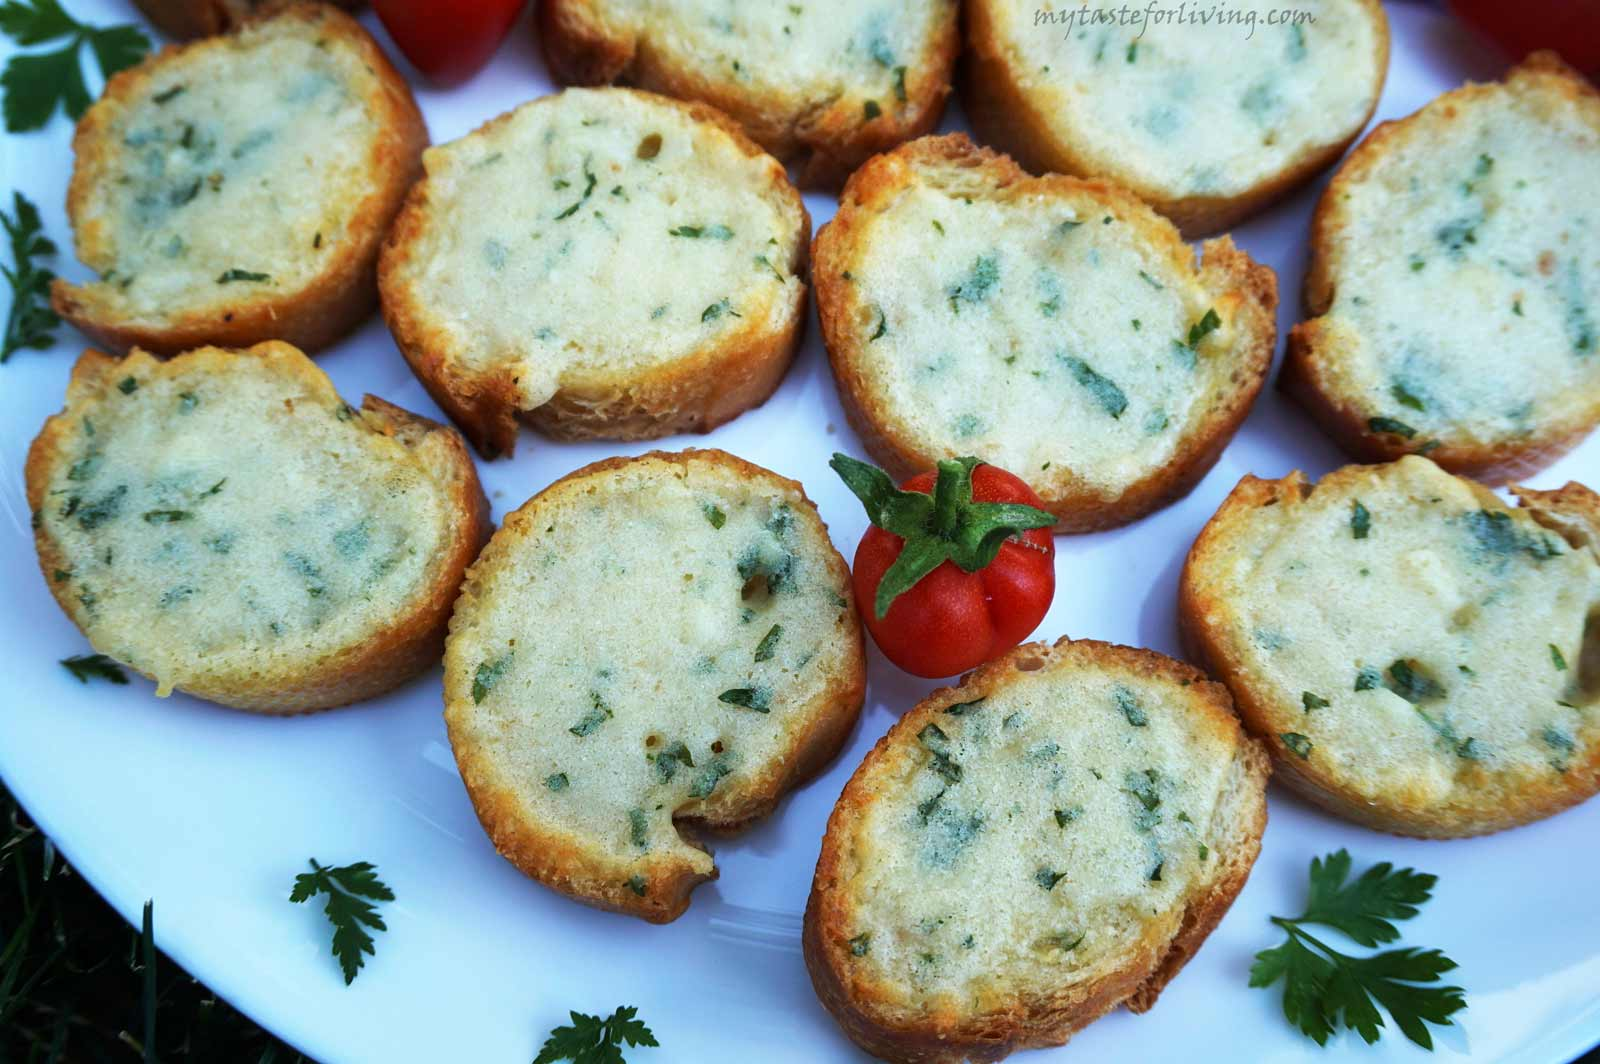 Crispy and delicious bruschettas with cheese of your choice (cheddar, parmesan, yellow cheese, grana padano) with butter, garlic and parsley. Easy and fast appetizer for your table!